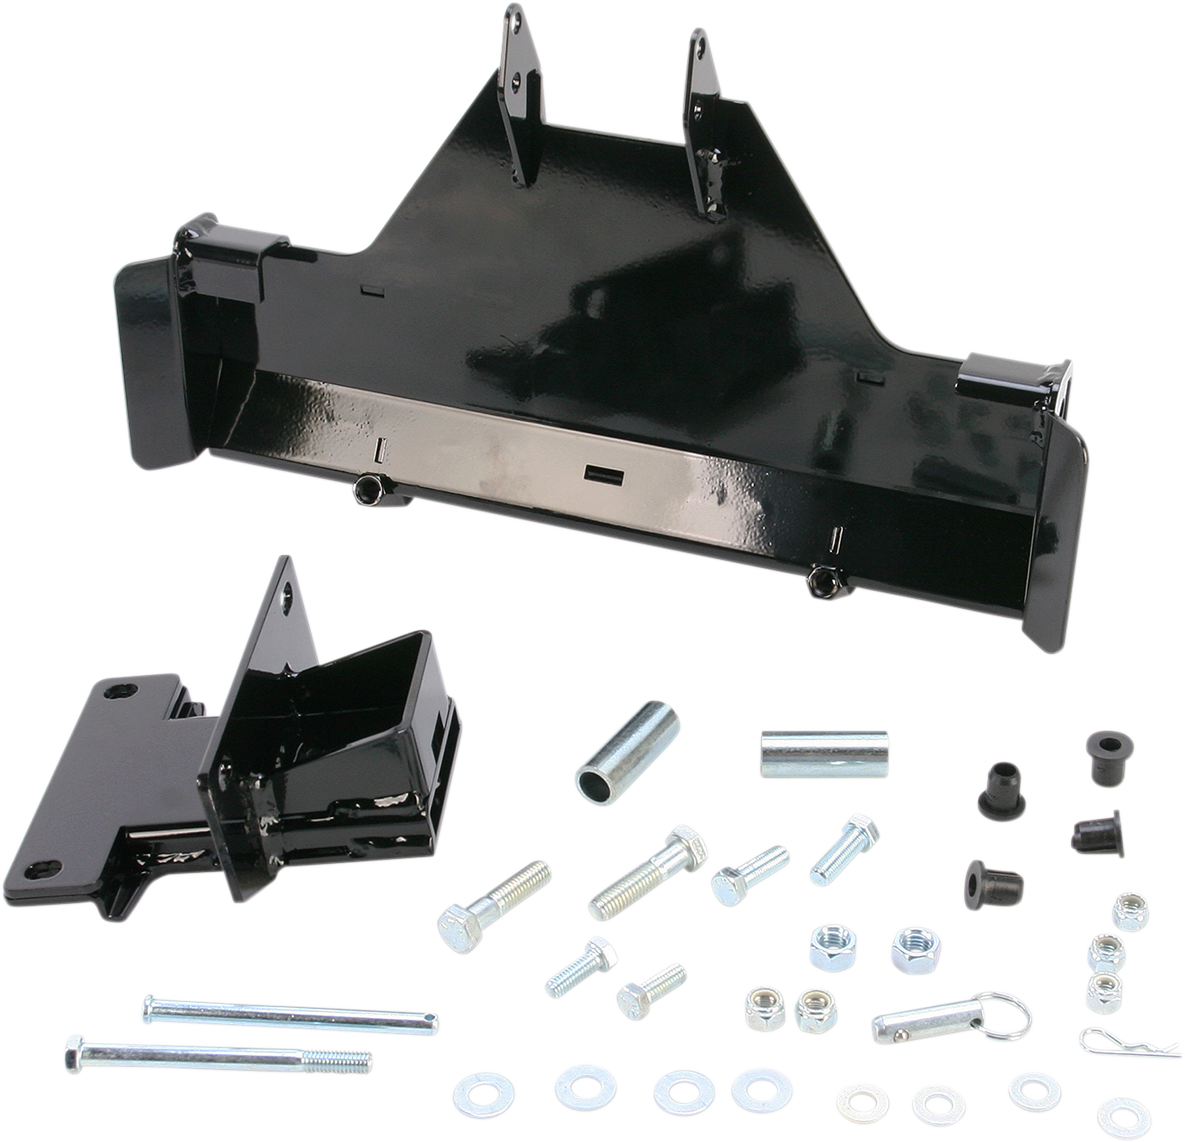 Moose RM4 UTV Snow Plow Mount Plate Kit for 09-16 Kawasaki Kaf 620 Mule 4010 4x4